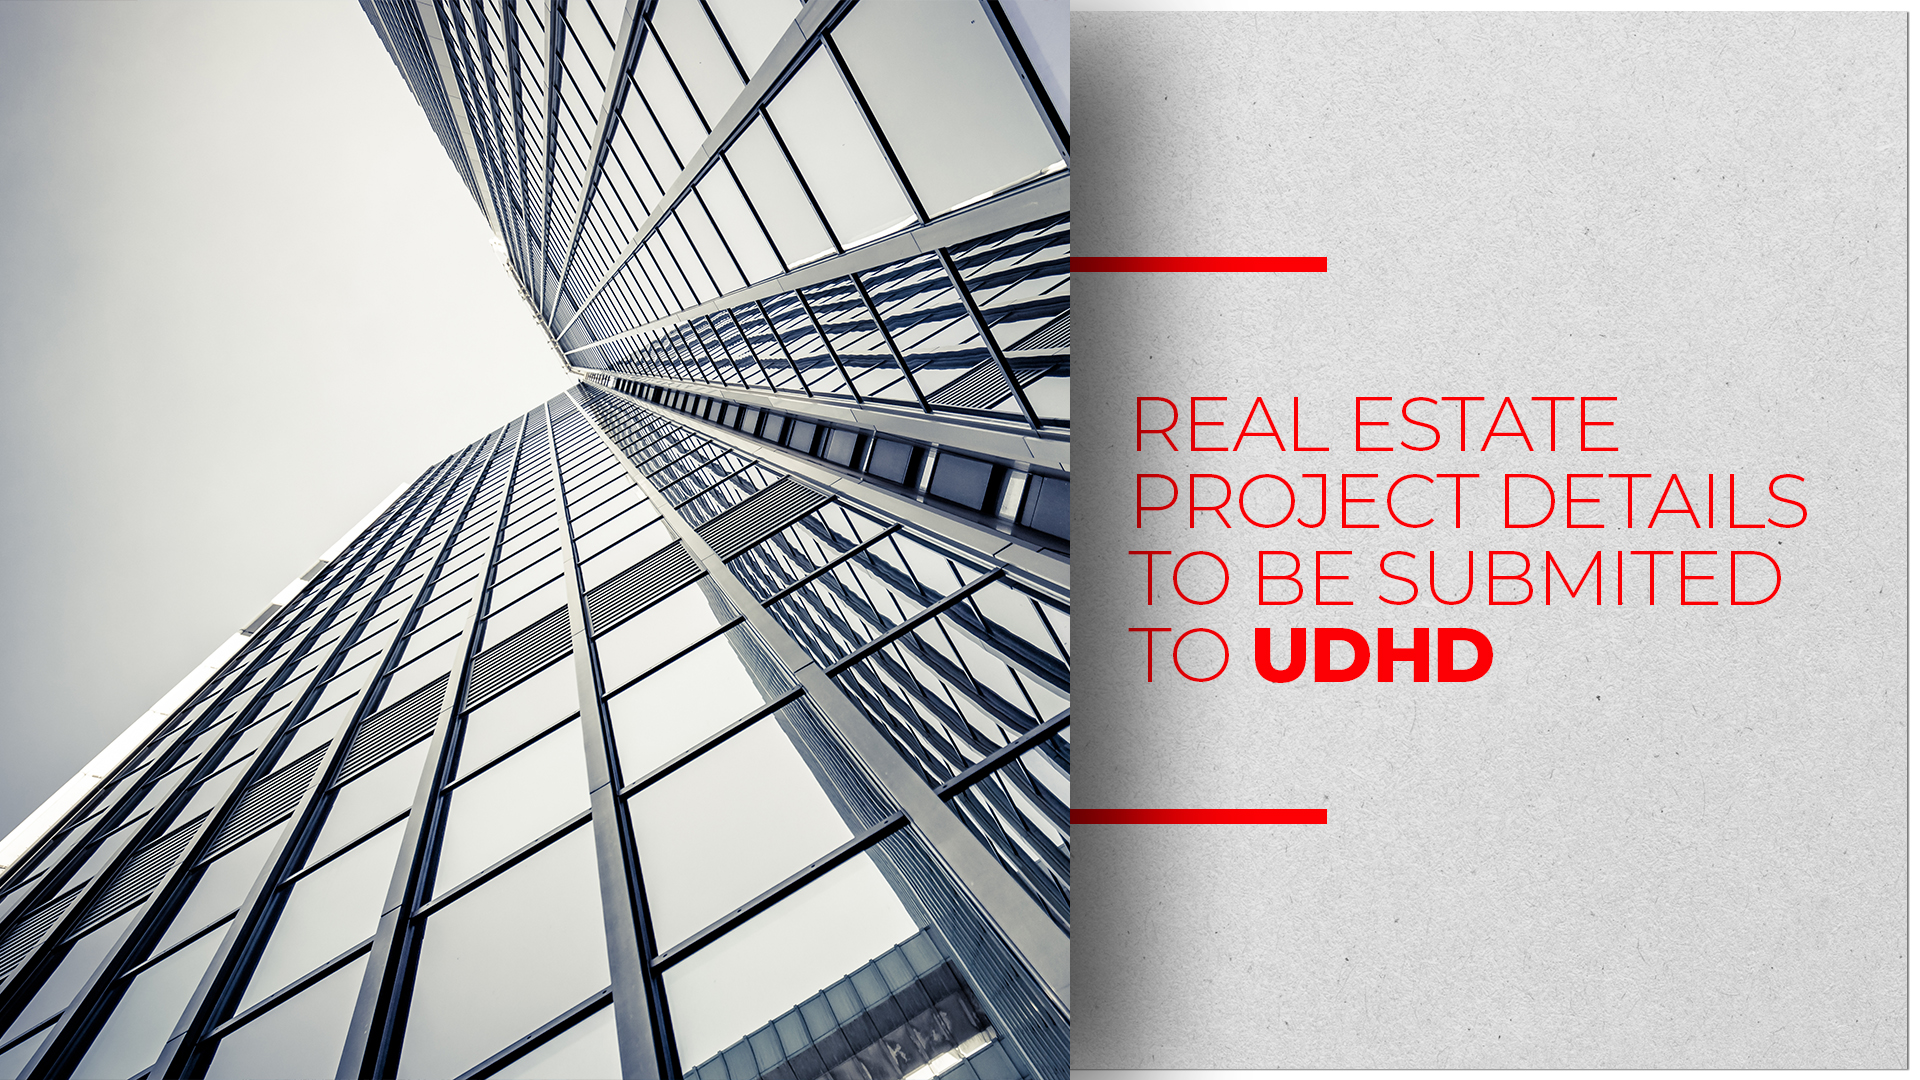 Submit list of ongoing real estate projects UDHD